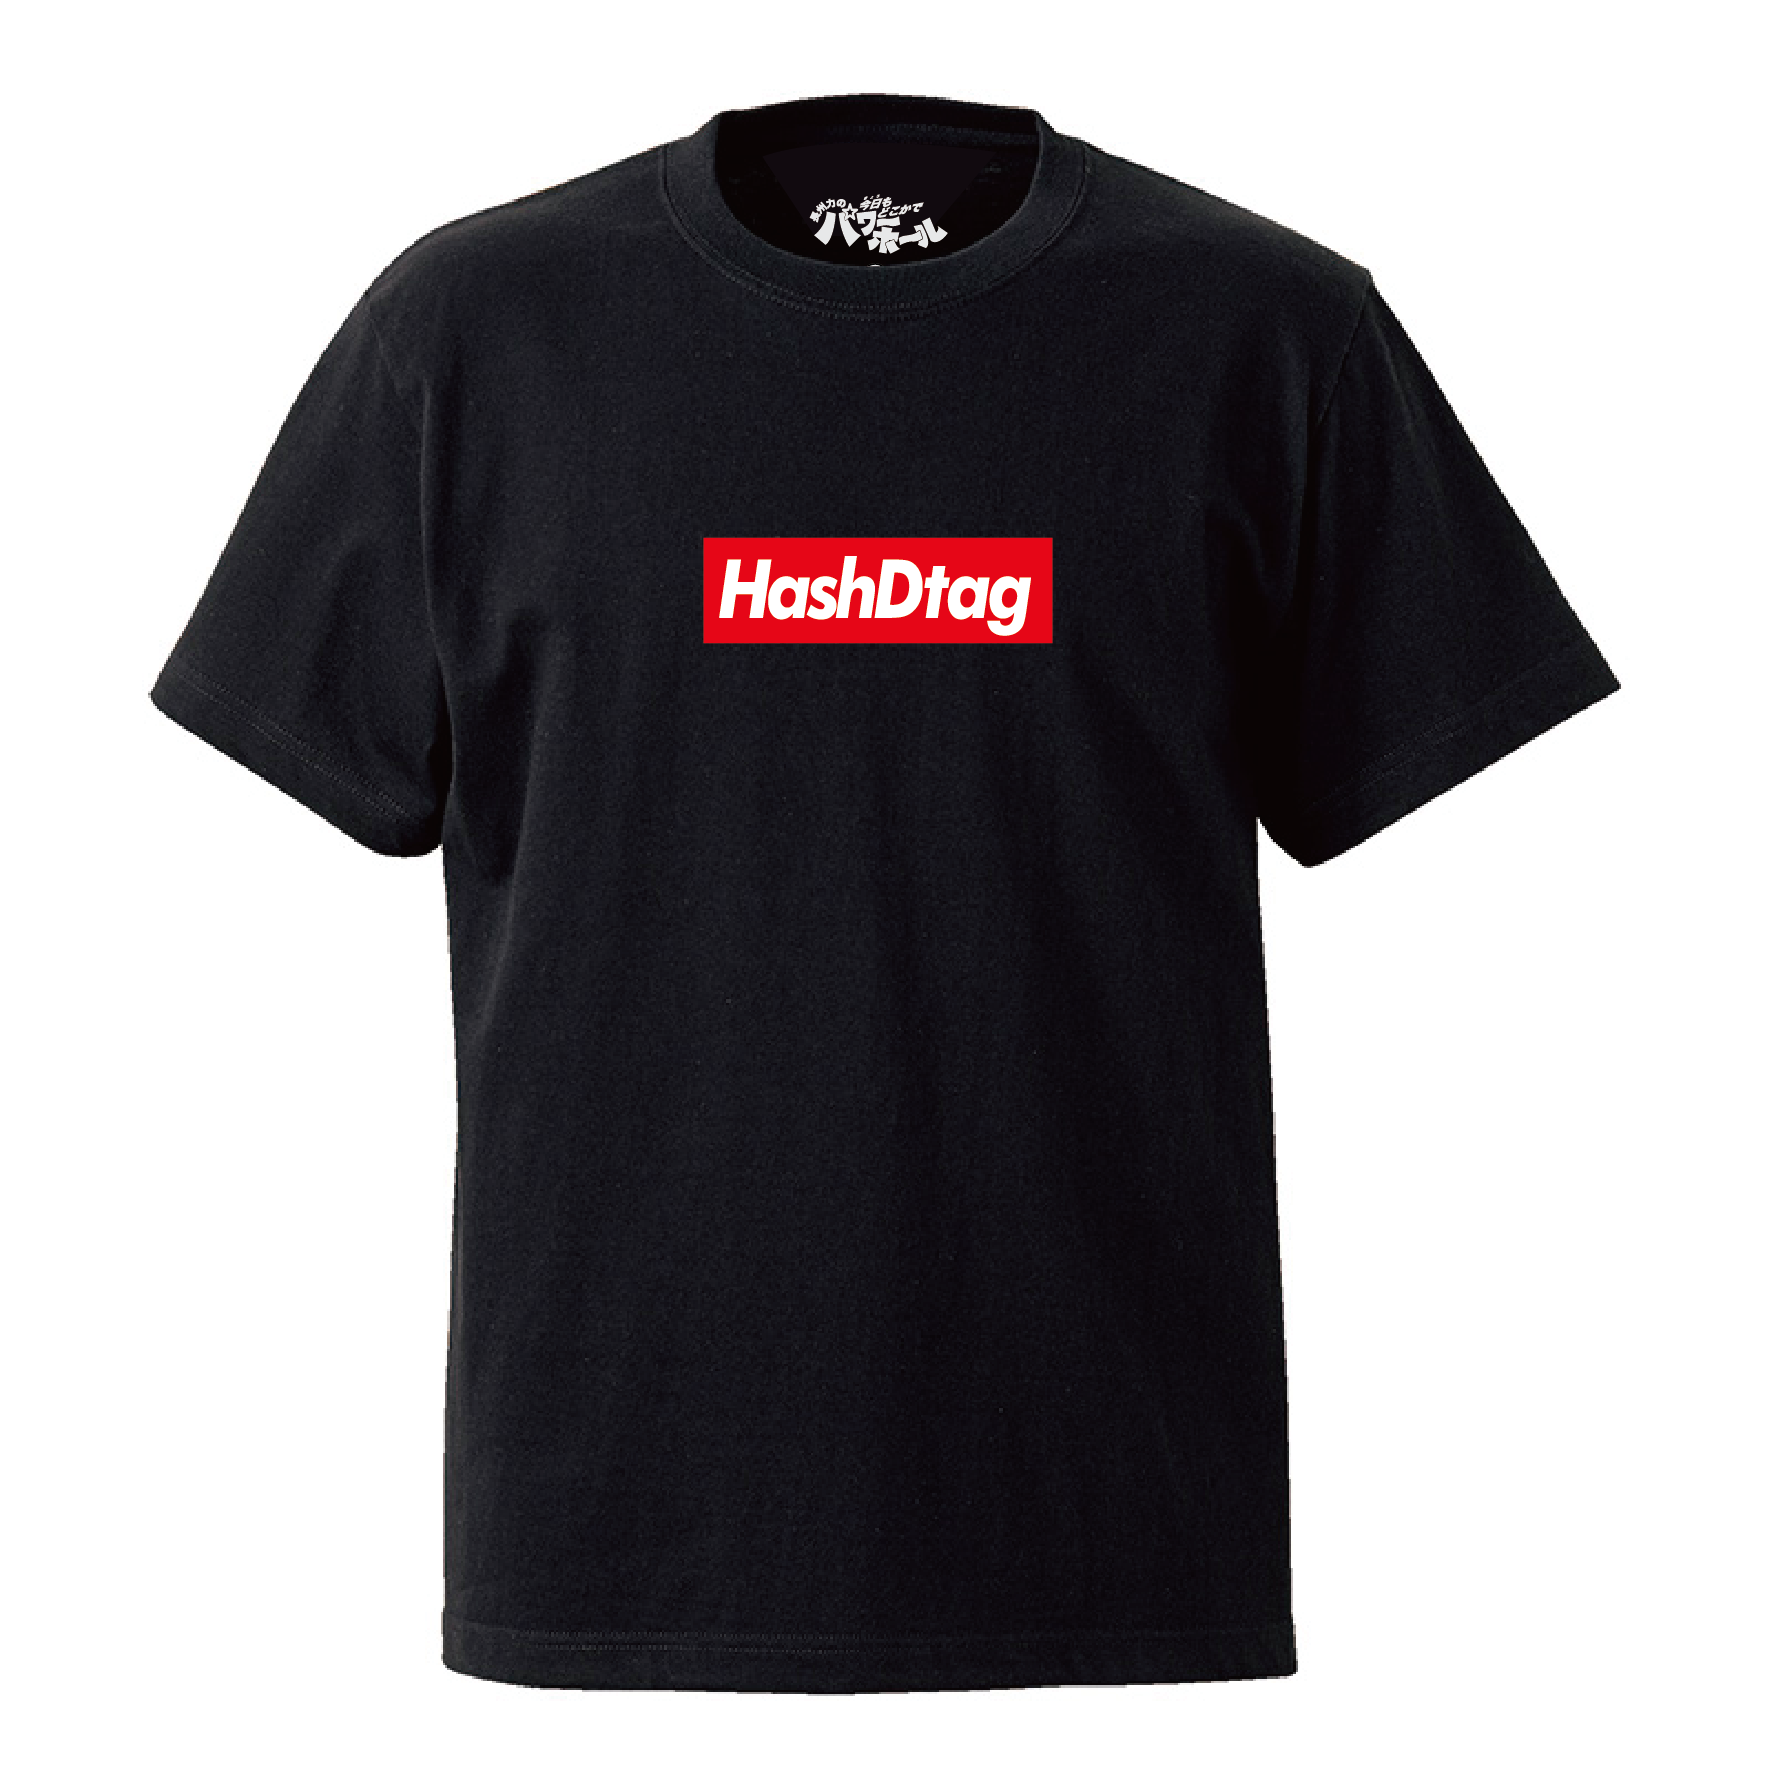 T-shirt -HashDtag Black